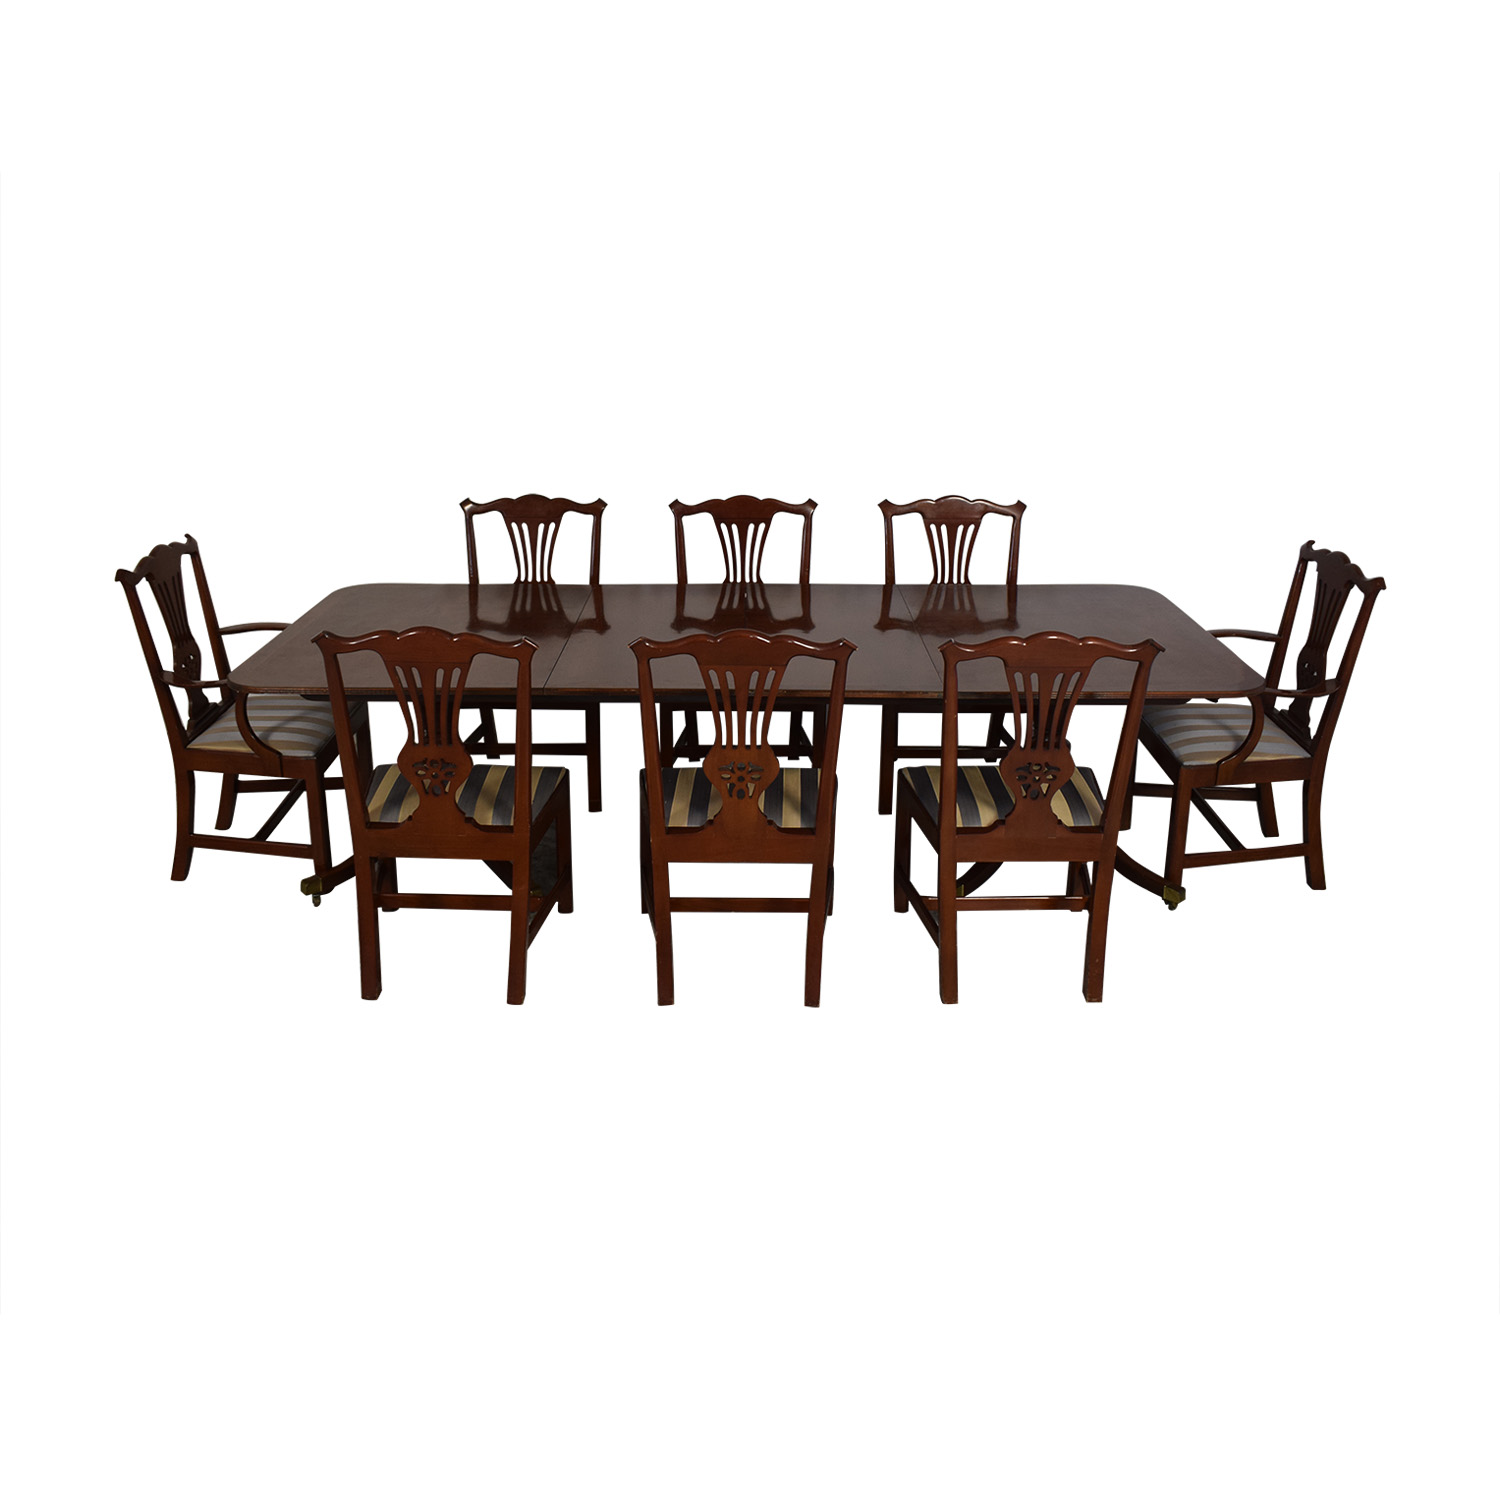 Baker Furniture Baker Furniture Dining Room Table and Chairs second hand